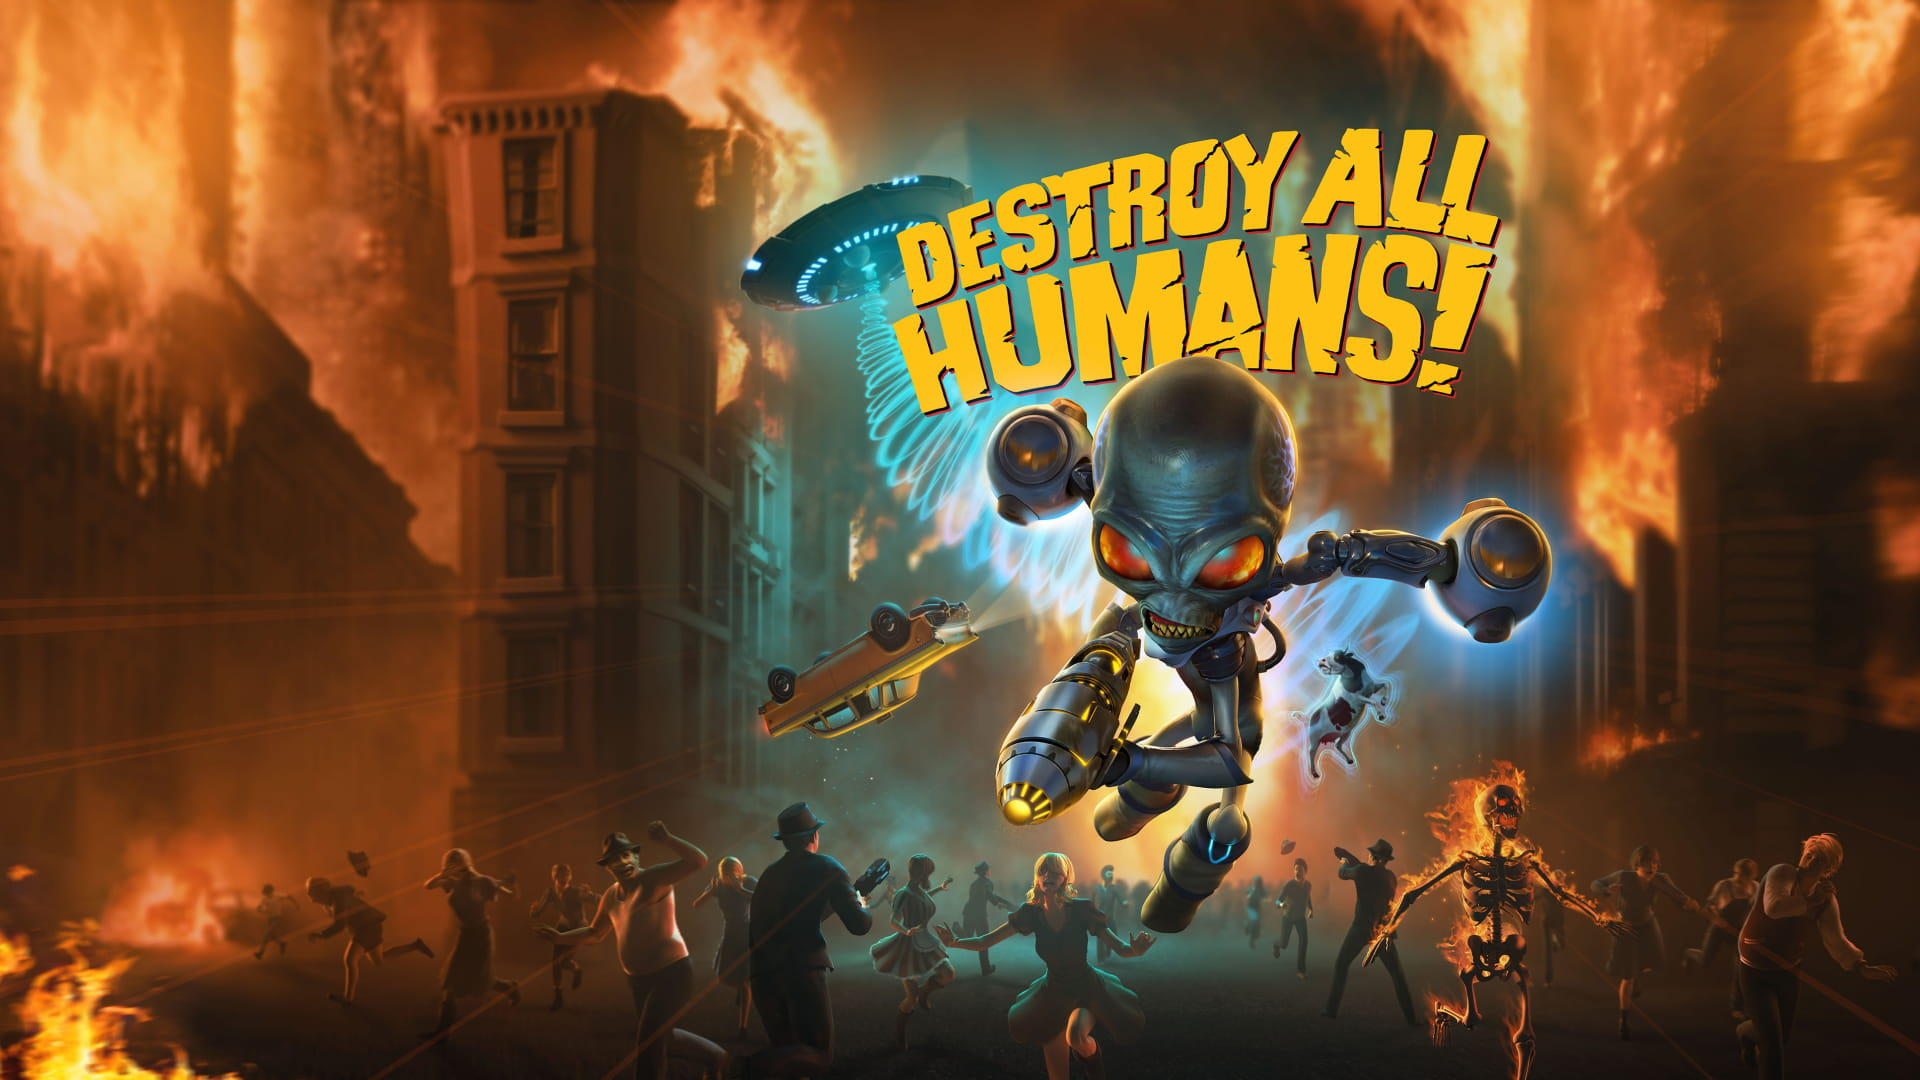 Initiating Probal Defence Measures: The Destroy All Humans! Invasion Date Is Set For July 28th, 2020